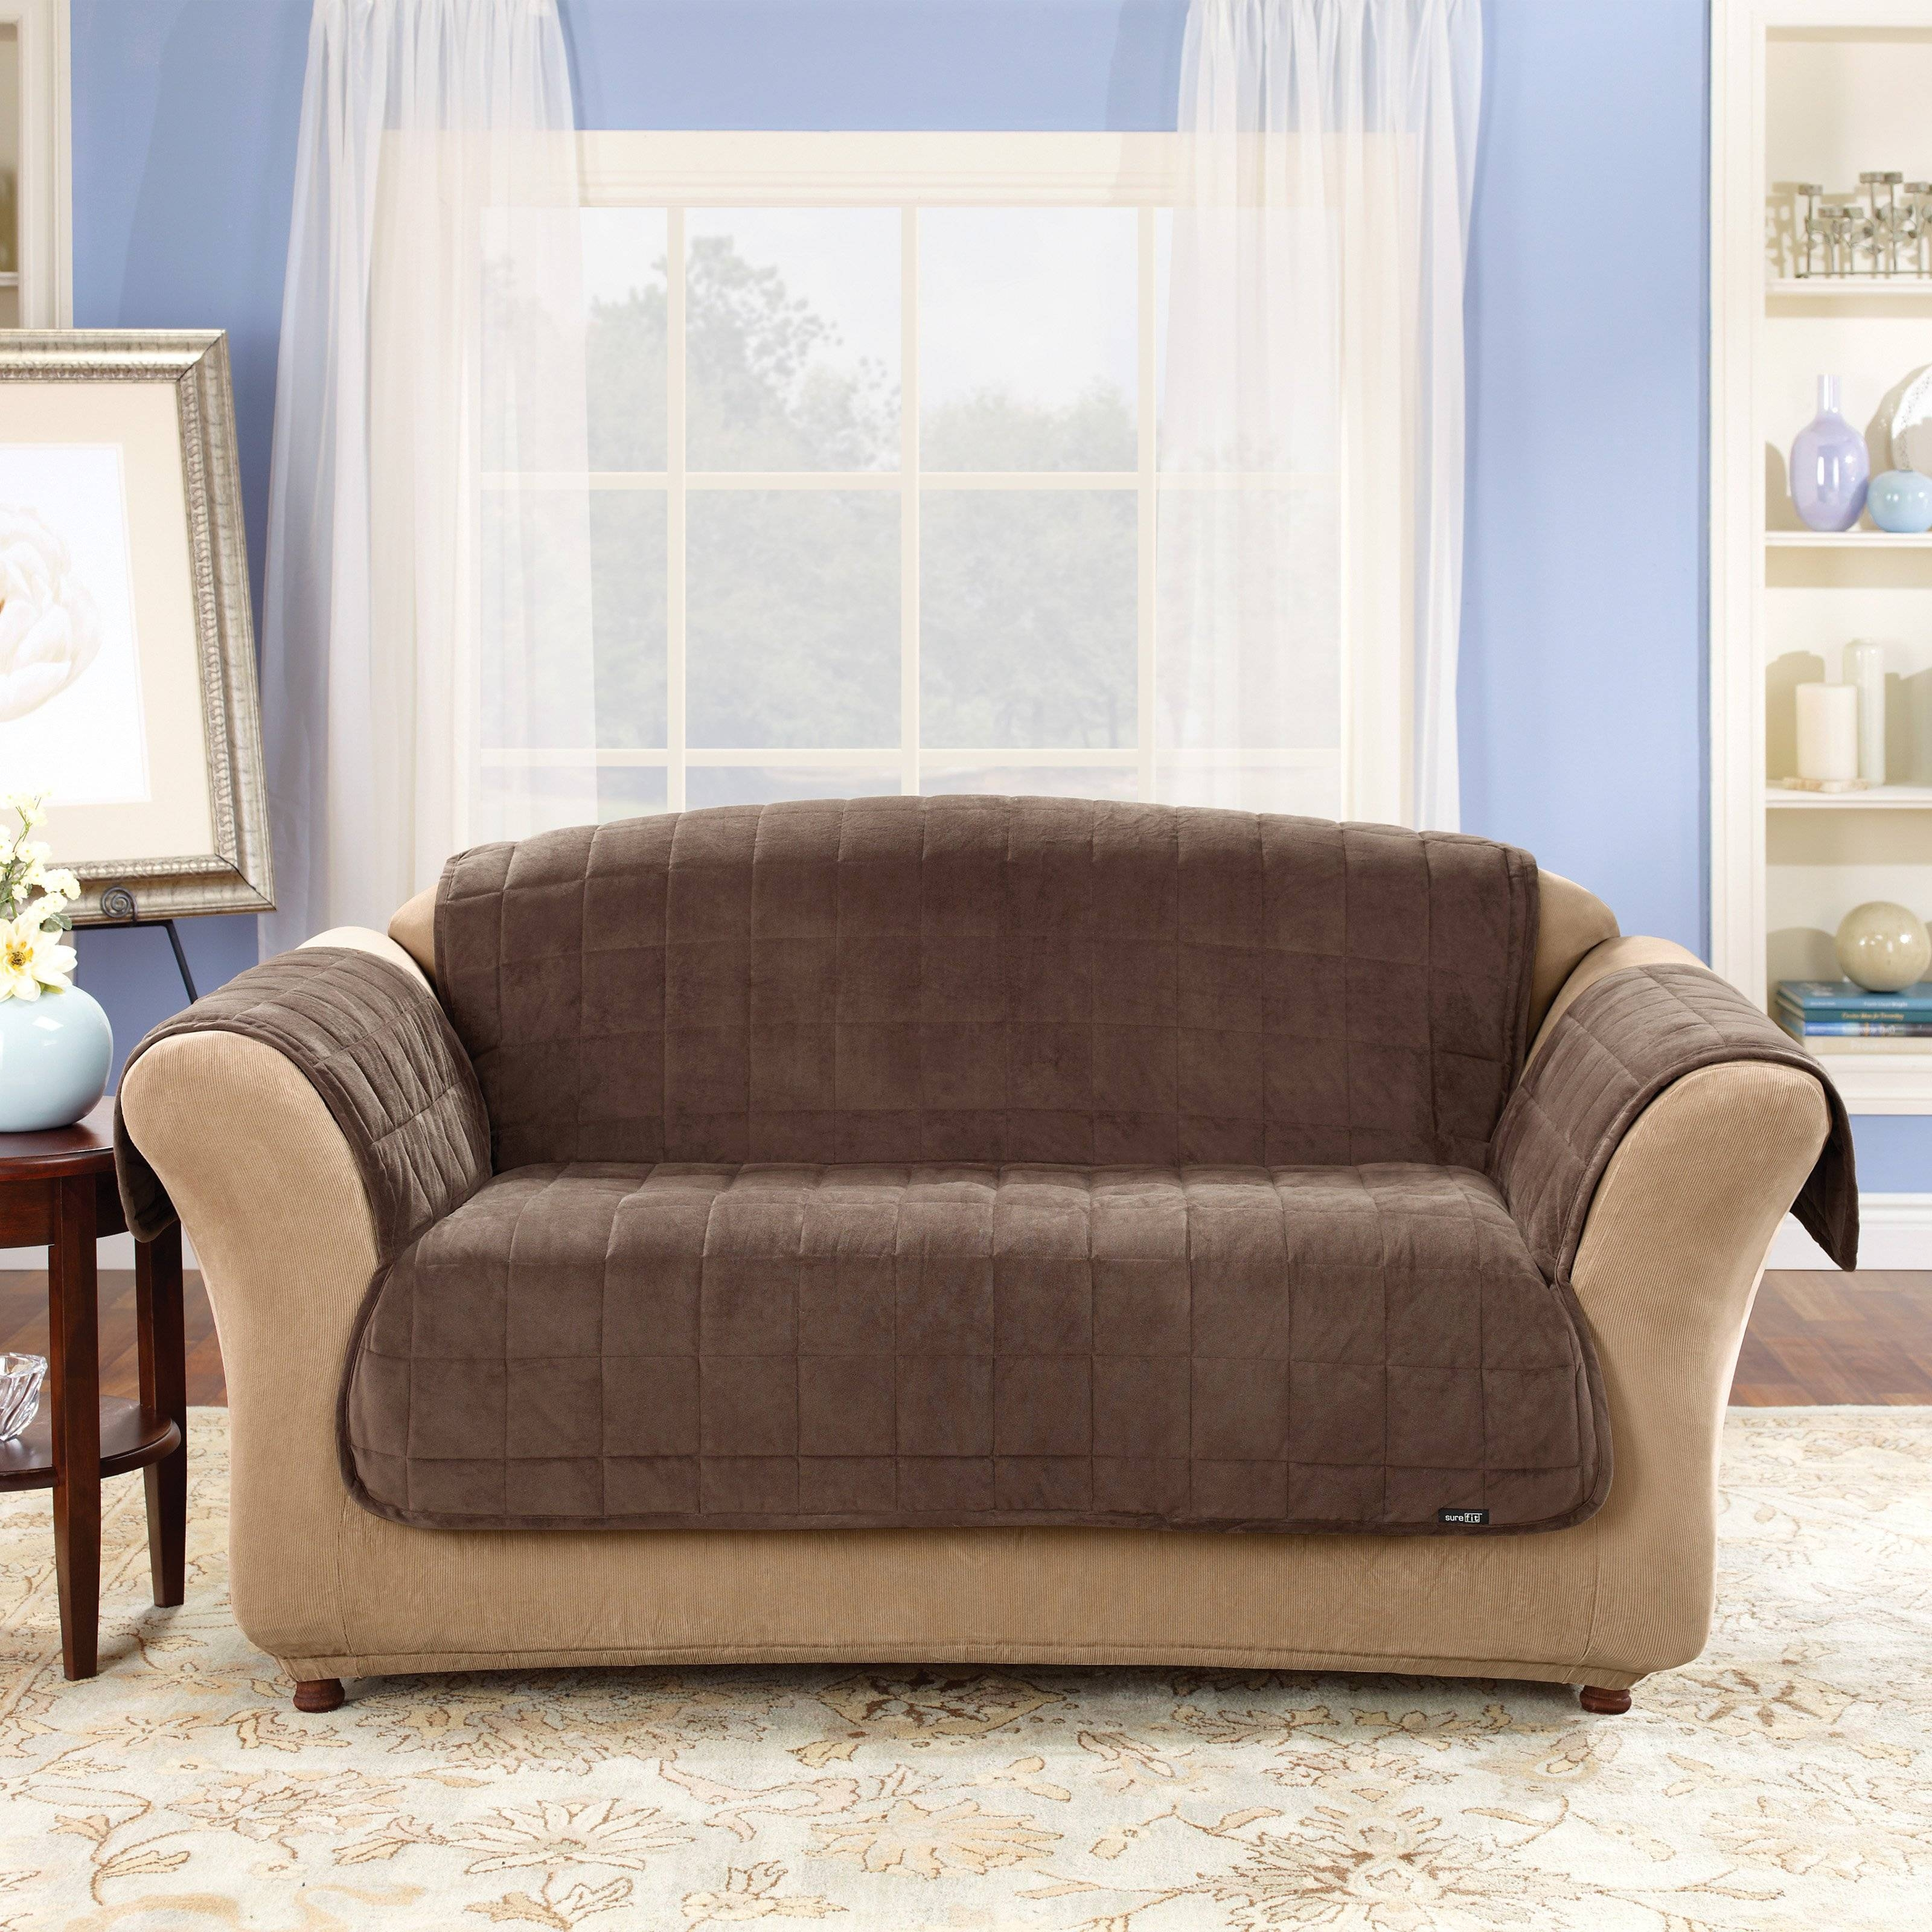 Furniture: Creates Clean Foundation That Complements Decorating with regard to Slipcover For Leather Sectional Sofas (Image 8 of 30)